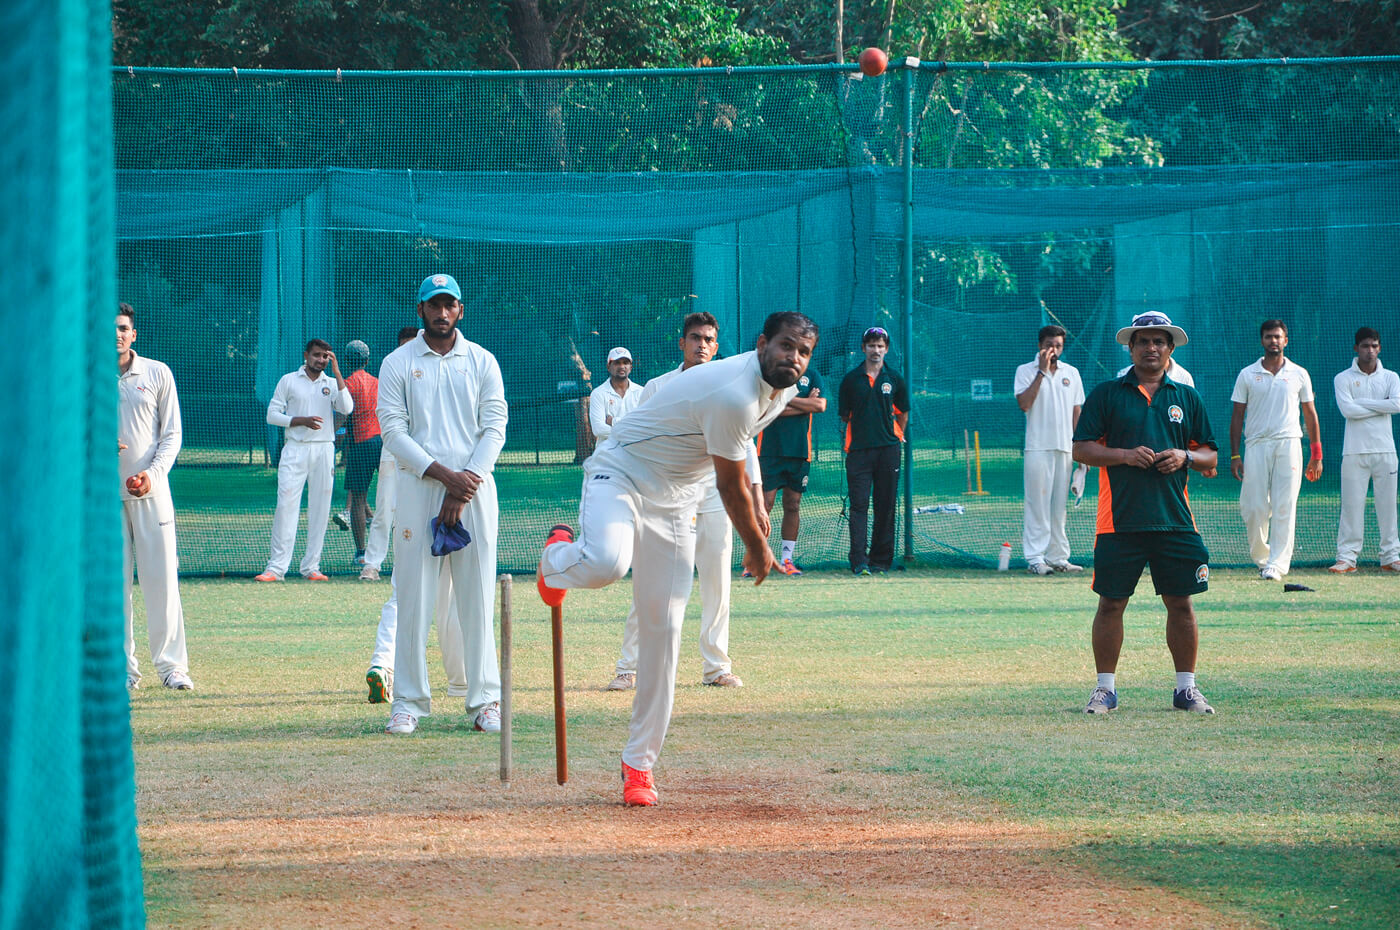 Yusuf tosses one one up at the nets at Motibaug Cricket Club in Vadodara